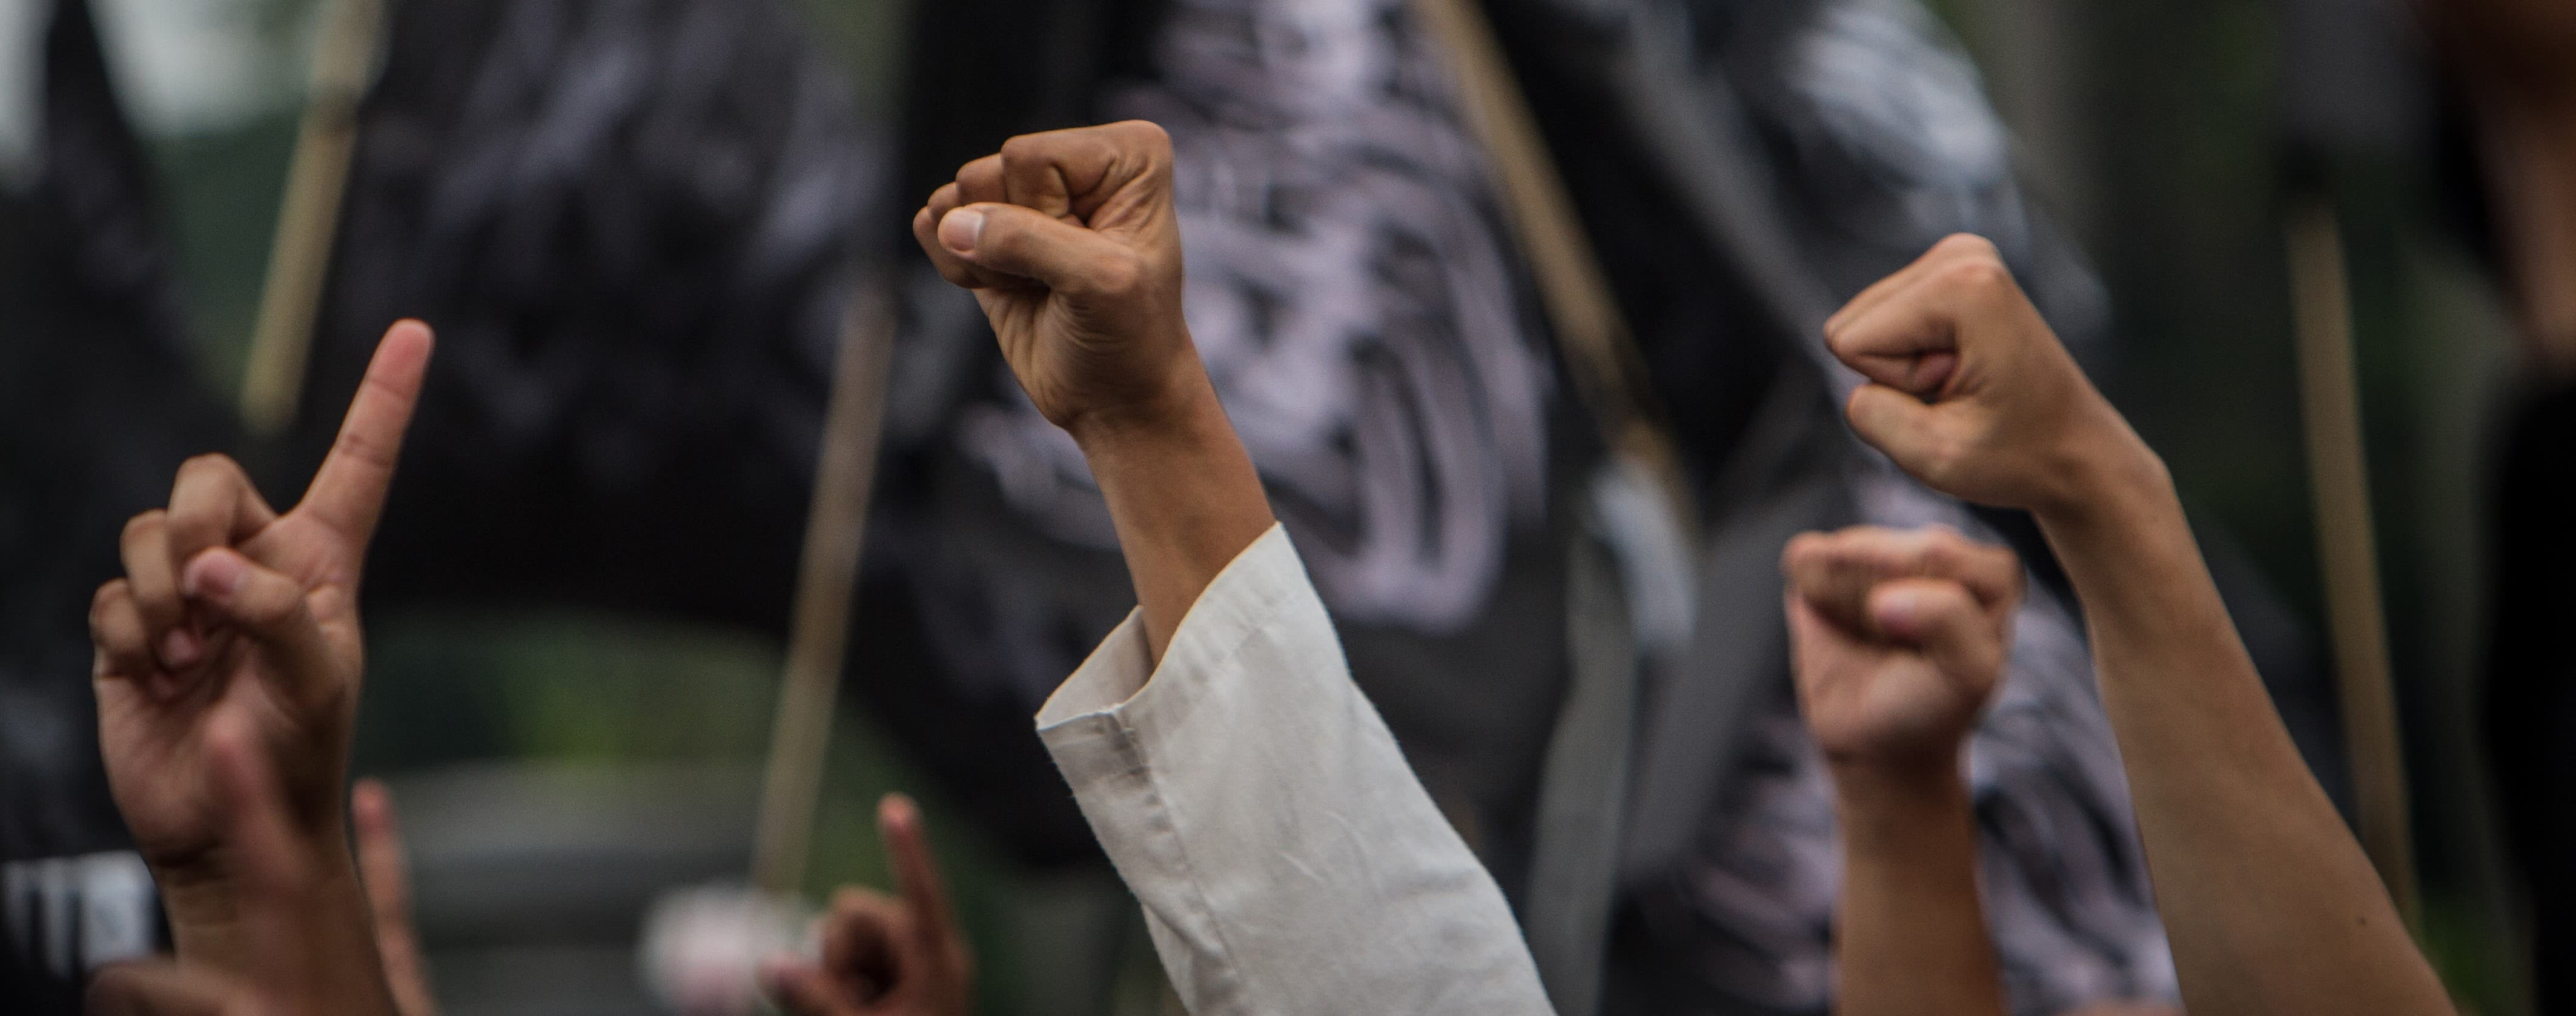 Protesters at a rally against the Indonesian government's ban of Islamist group Hizbut-Tahrir, July 2017 (Photo: Getty Images/Barcroft Media)